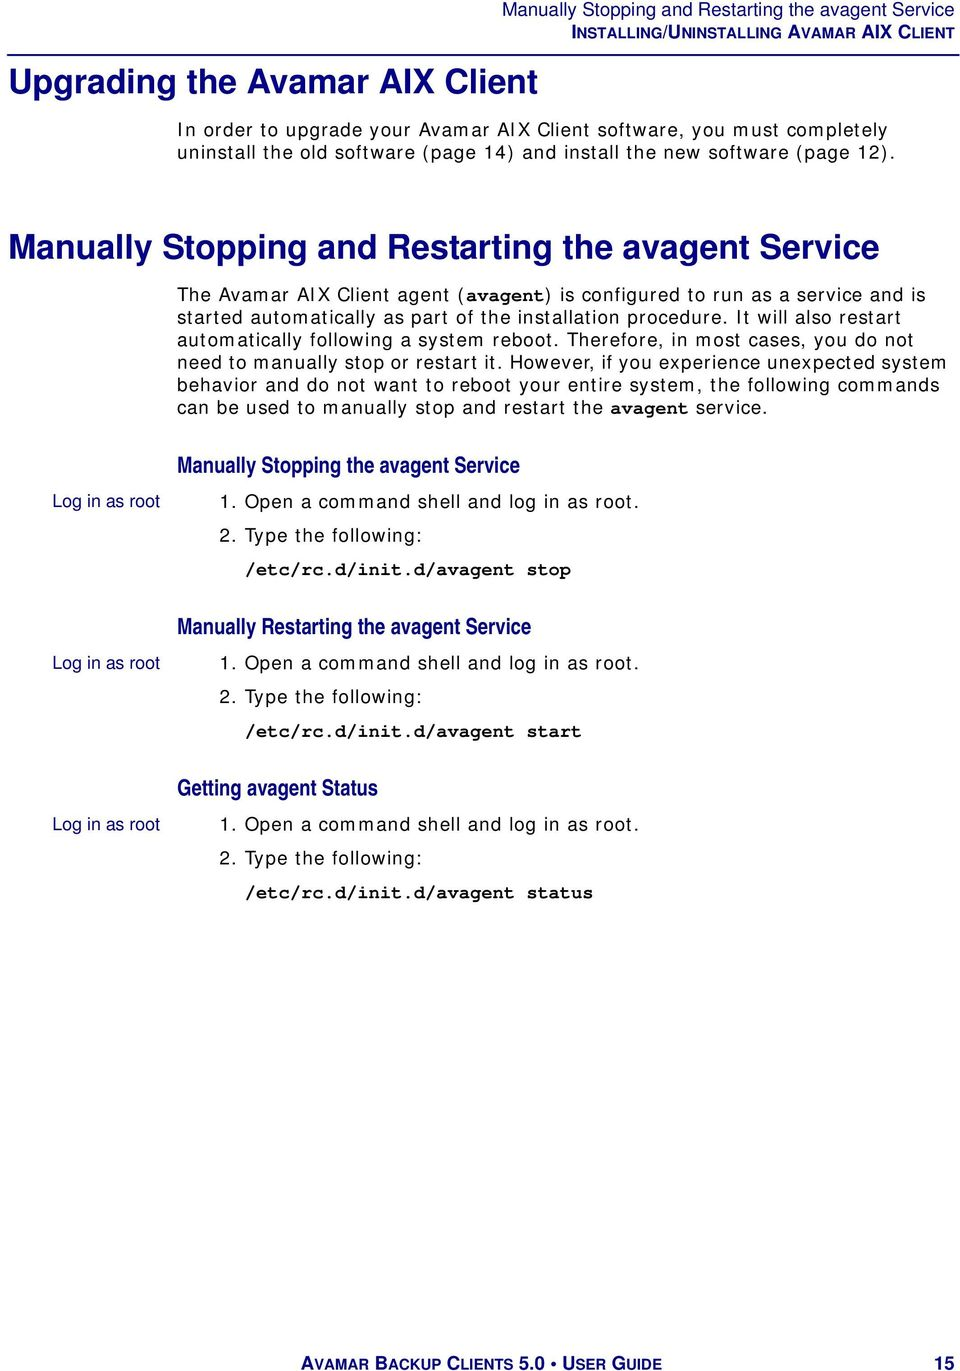 Manually Stopping and Restarting the avagent Service The Avamar AIX Client agent (avagent) is configured to run as a service and is started automatically as part of the installation procedure.